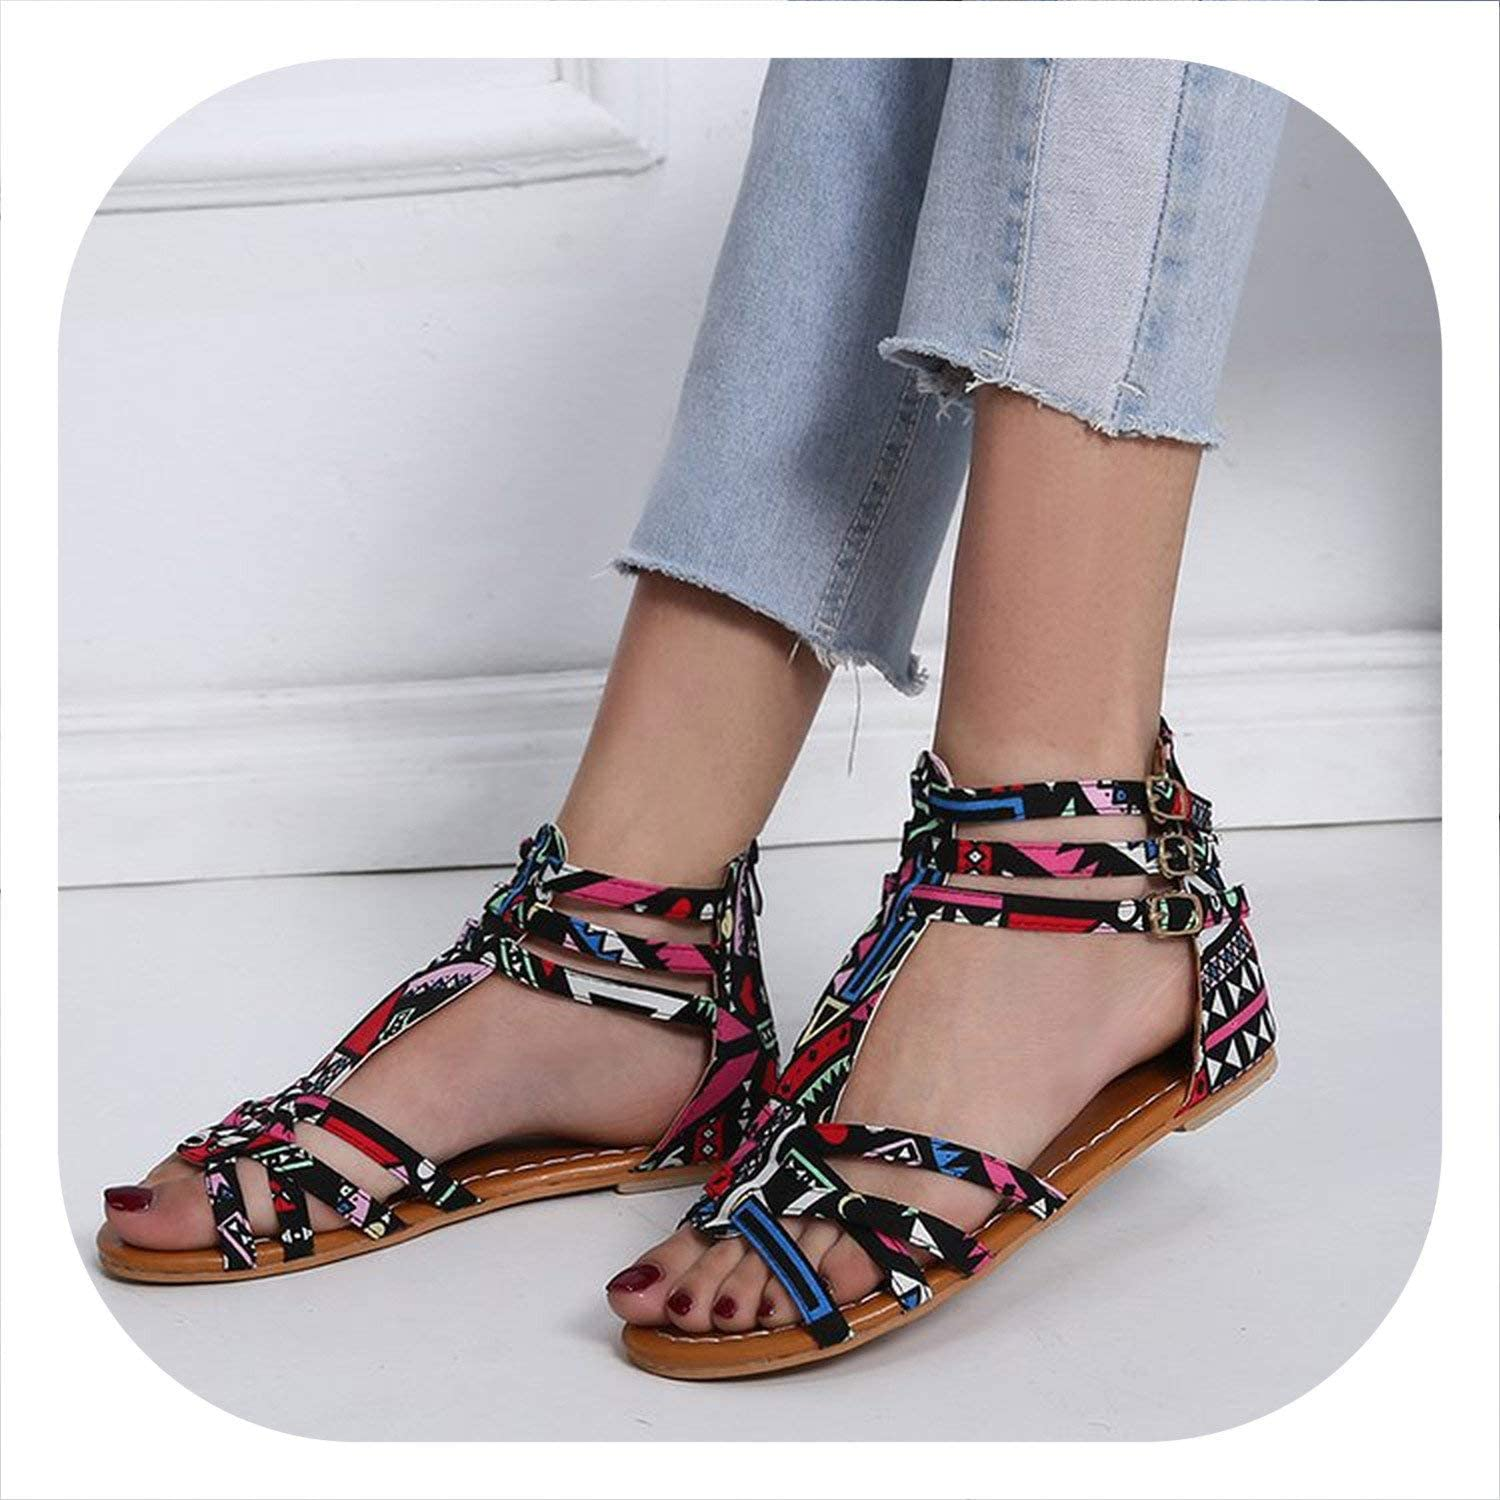 Mr Z Waroom Sandals Women Summer Non-Slip Flat shoes Linen Slippers Flat with Casual shoes Summer Slippers 2019 flip Flops